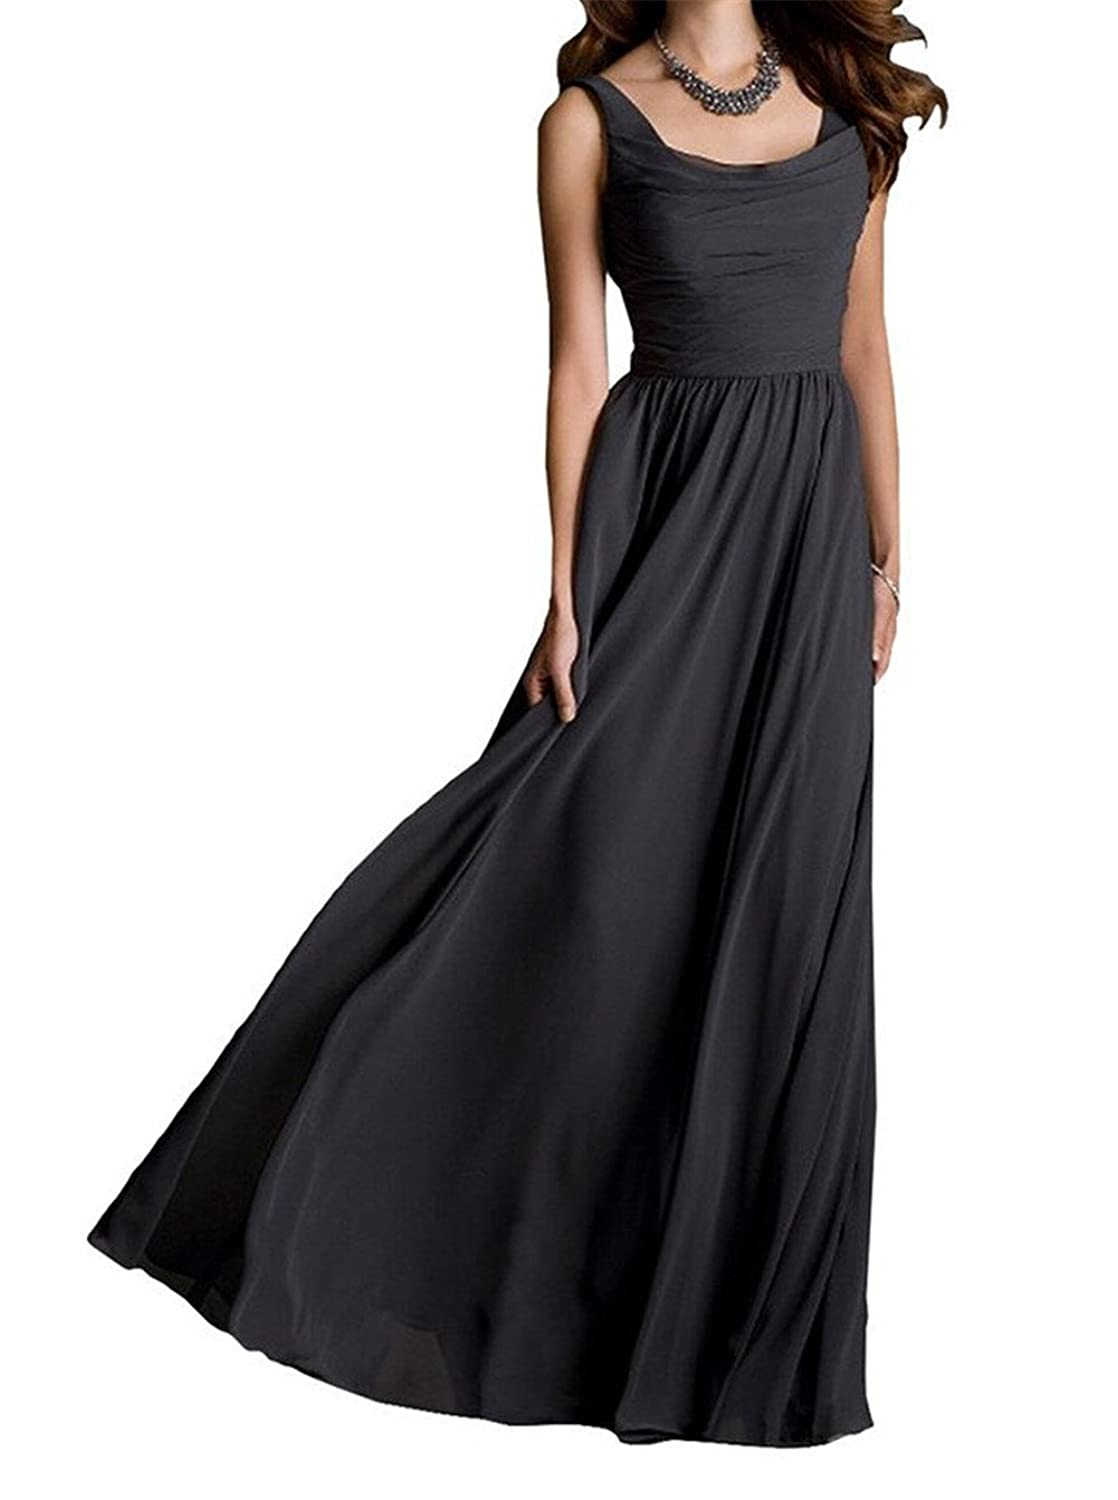 AngelDragon New Arrival Open Back Evening Gowns Long Chiffon Prom Dresses